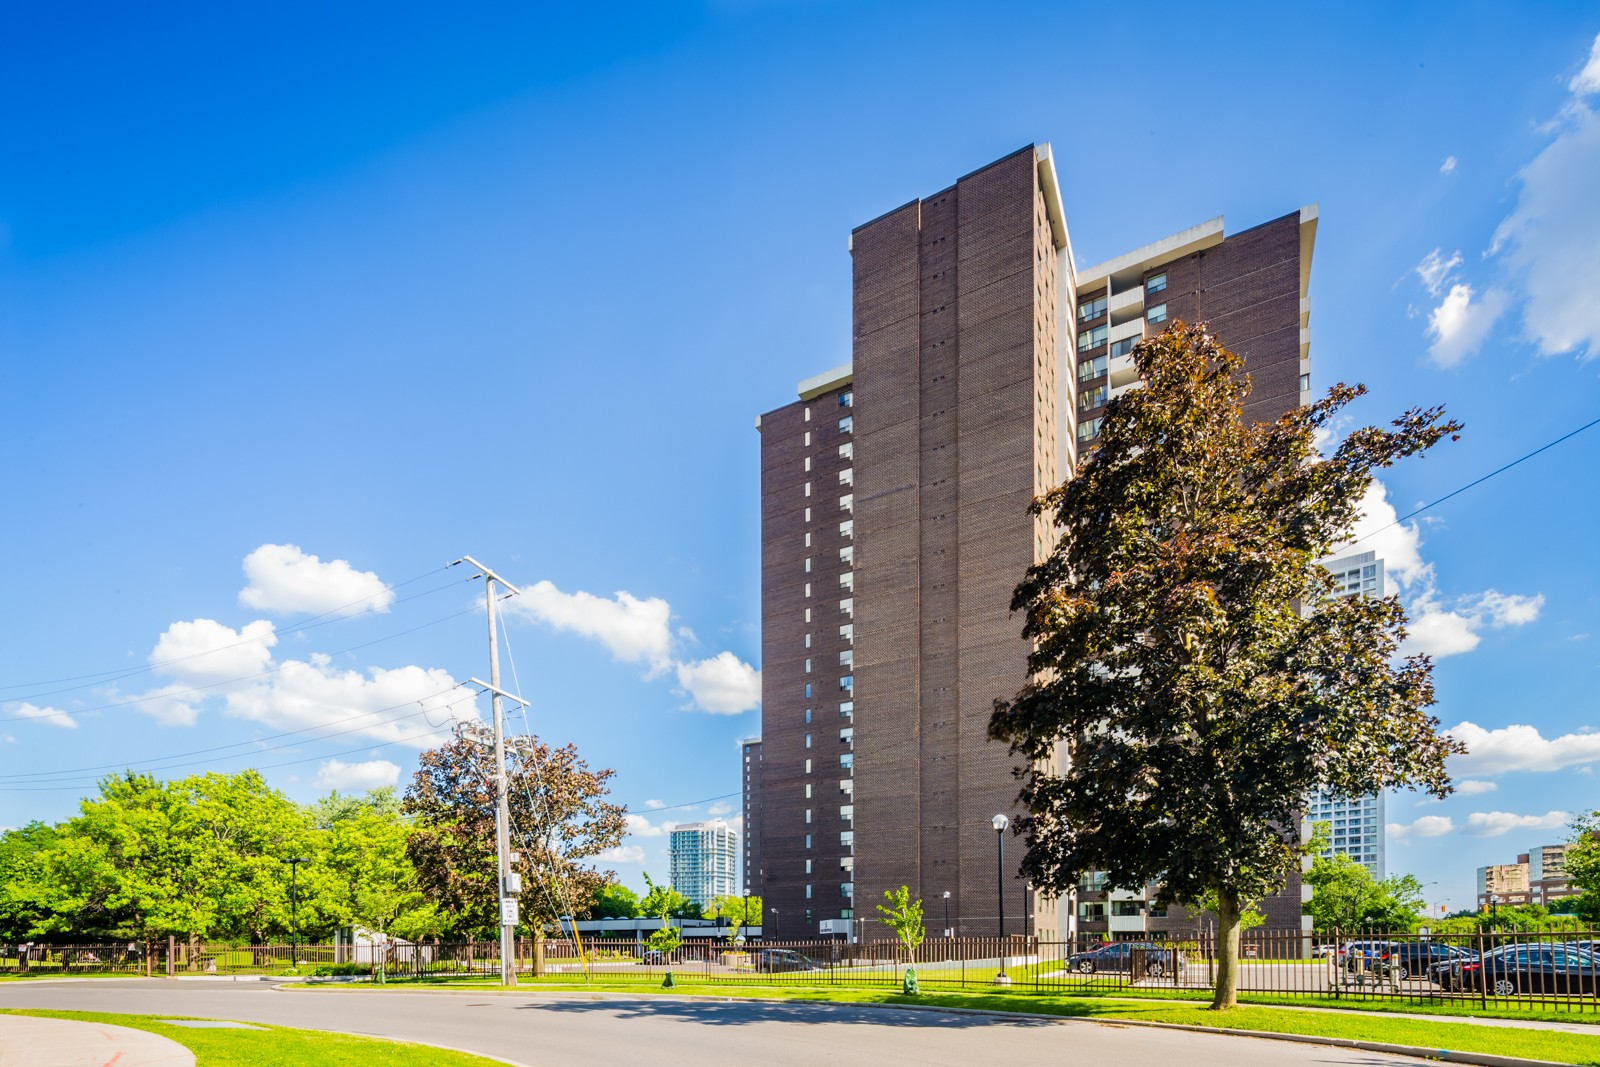 5 Old Sheppard Avenue Condos at 5 Old Sheppard Ave, Toronto 1